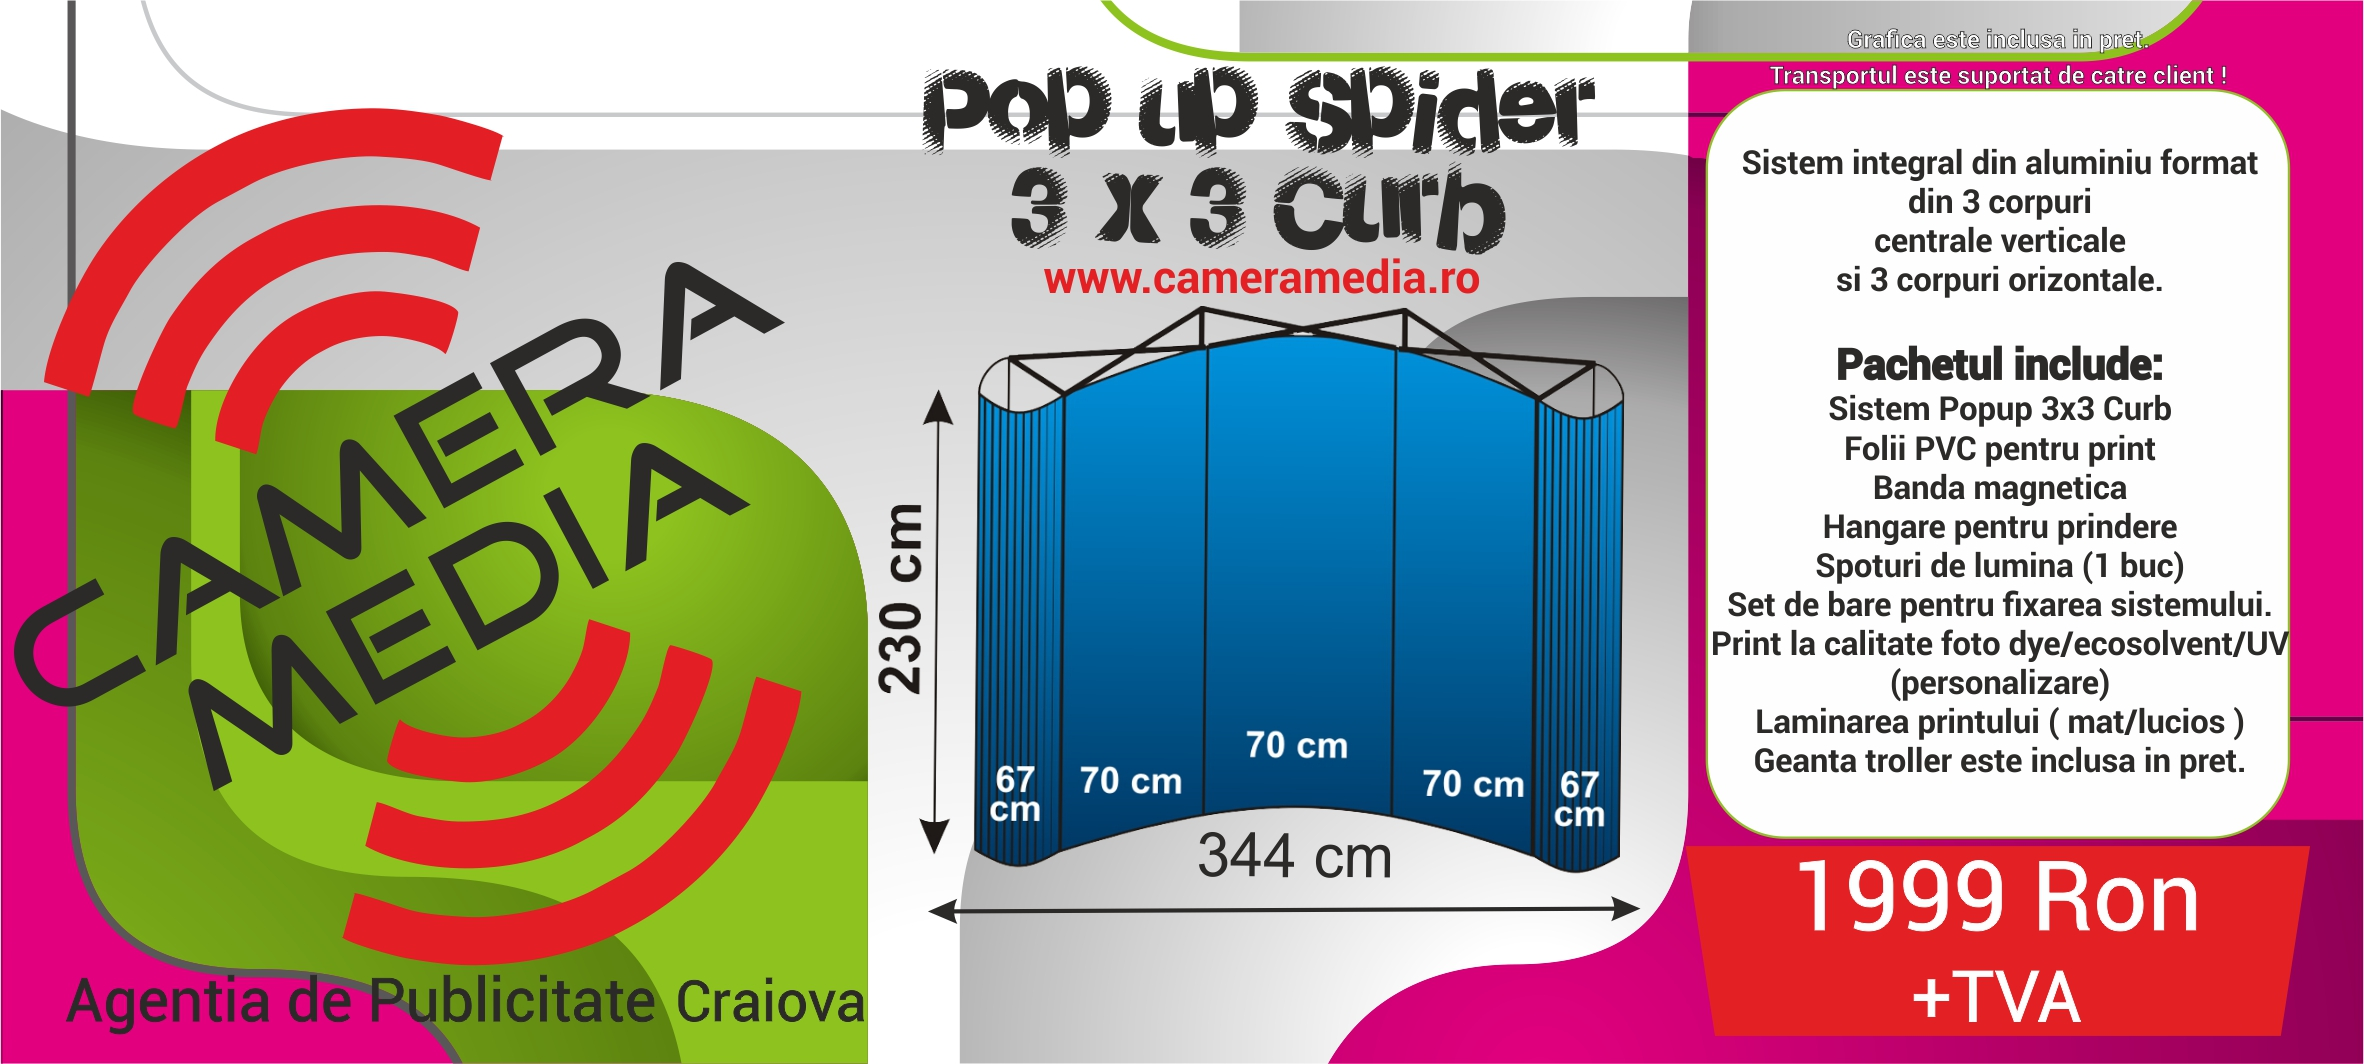 Spider Pop Up Craiova Camera Media Publicitate Craiova